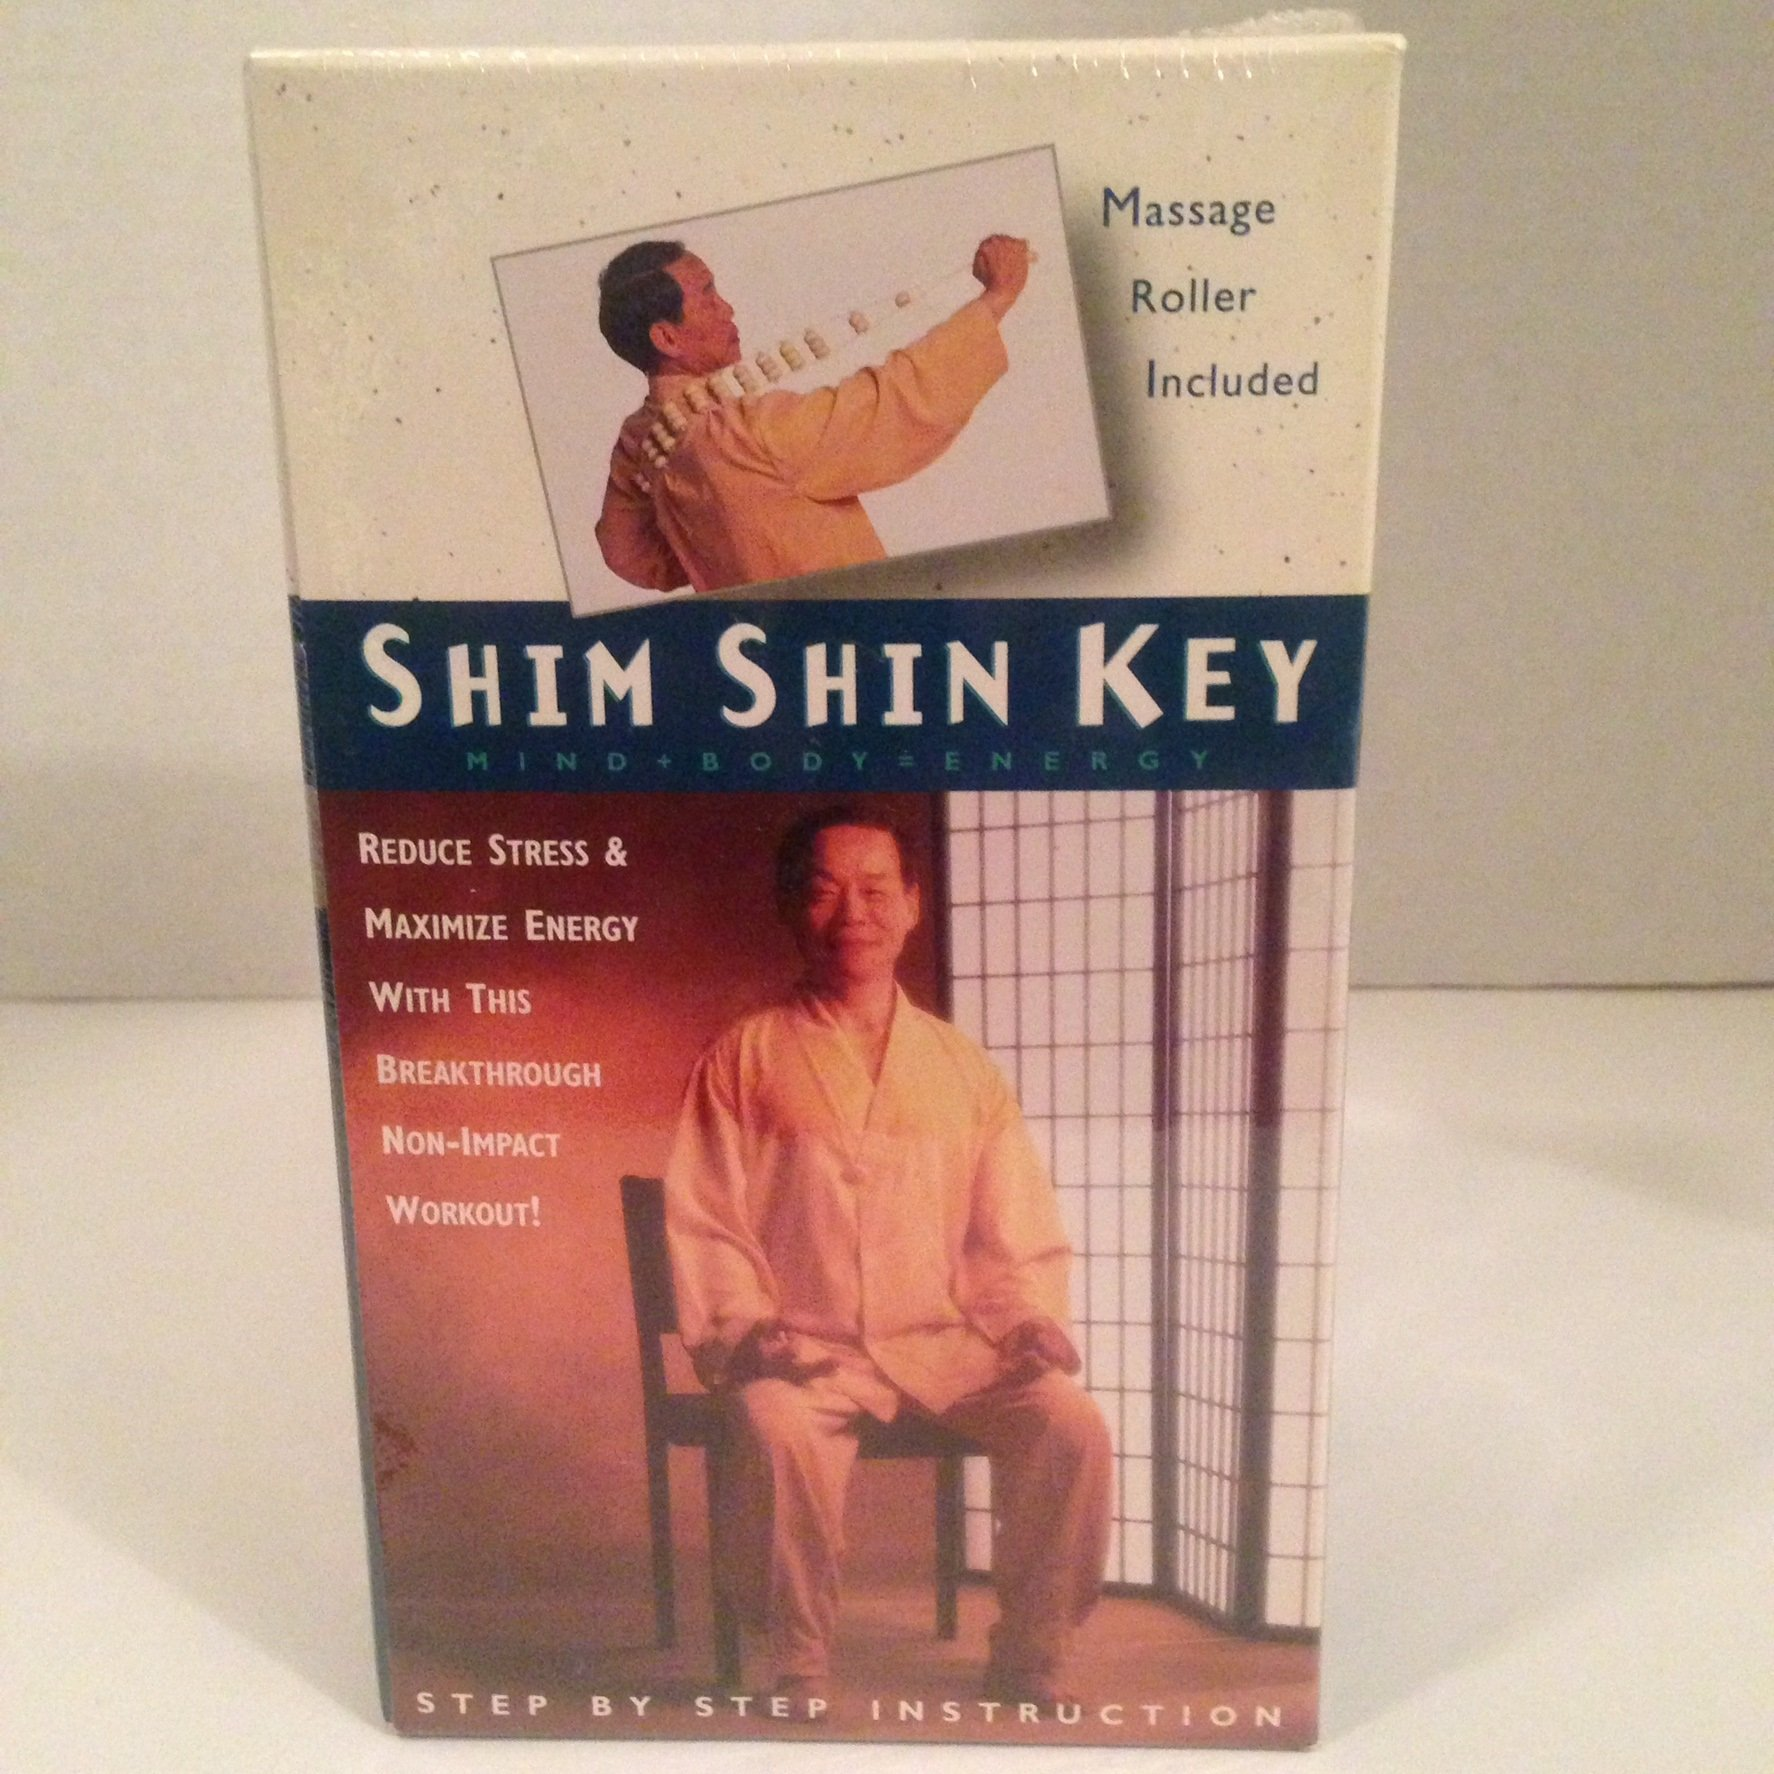 Shim Shin Key [VHS] Massage Roller Included by Time-Life Video & Te